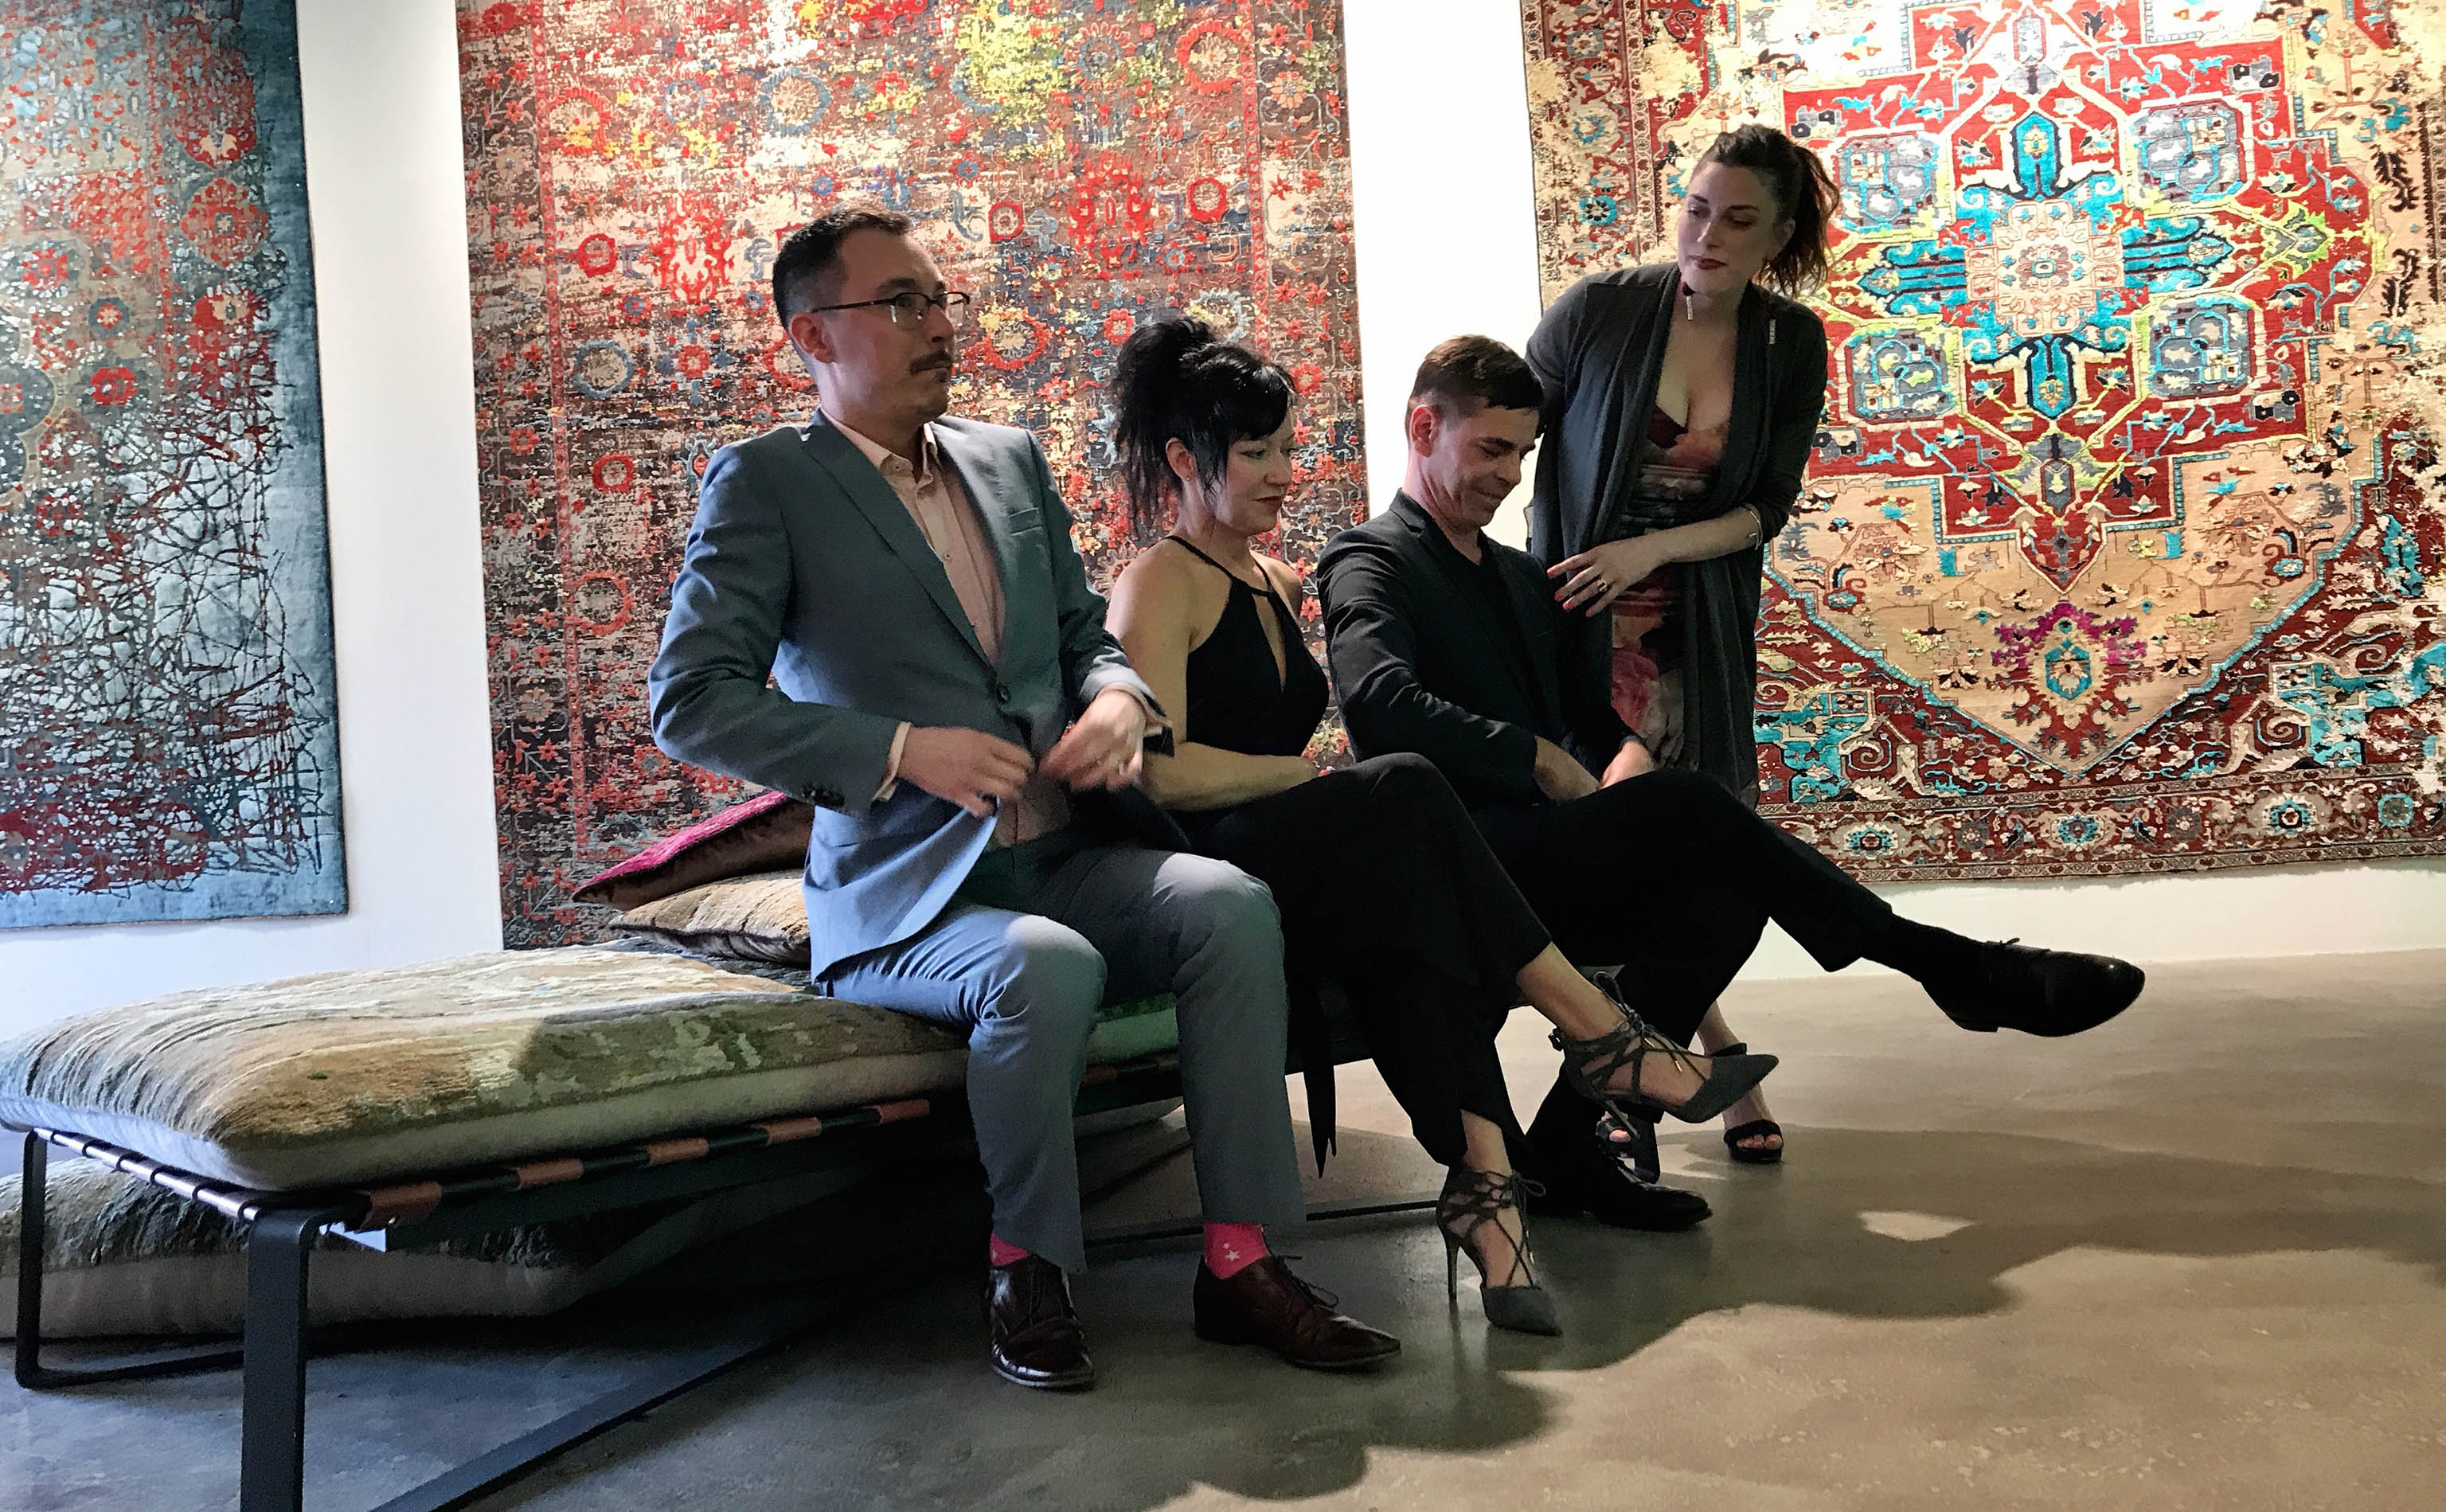 Yvan Semenowycz, Jenni Finlay, Jan Kath, and Robyn Waffle (left ot right) shown primping before the official photographer, Nancy Kim, snapped the group photo just as the opening party for Finlay and Kath's new Jan Kath Toronto showroom got underway on Thursday, 10 May 2018. | Image by The Ruggist.